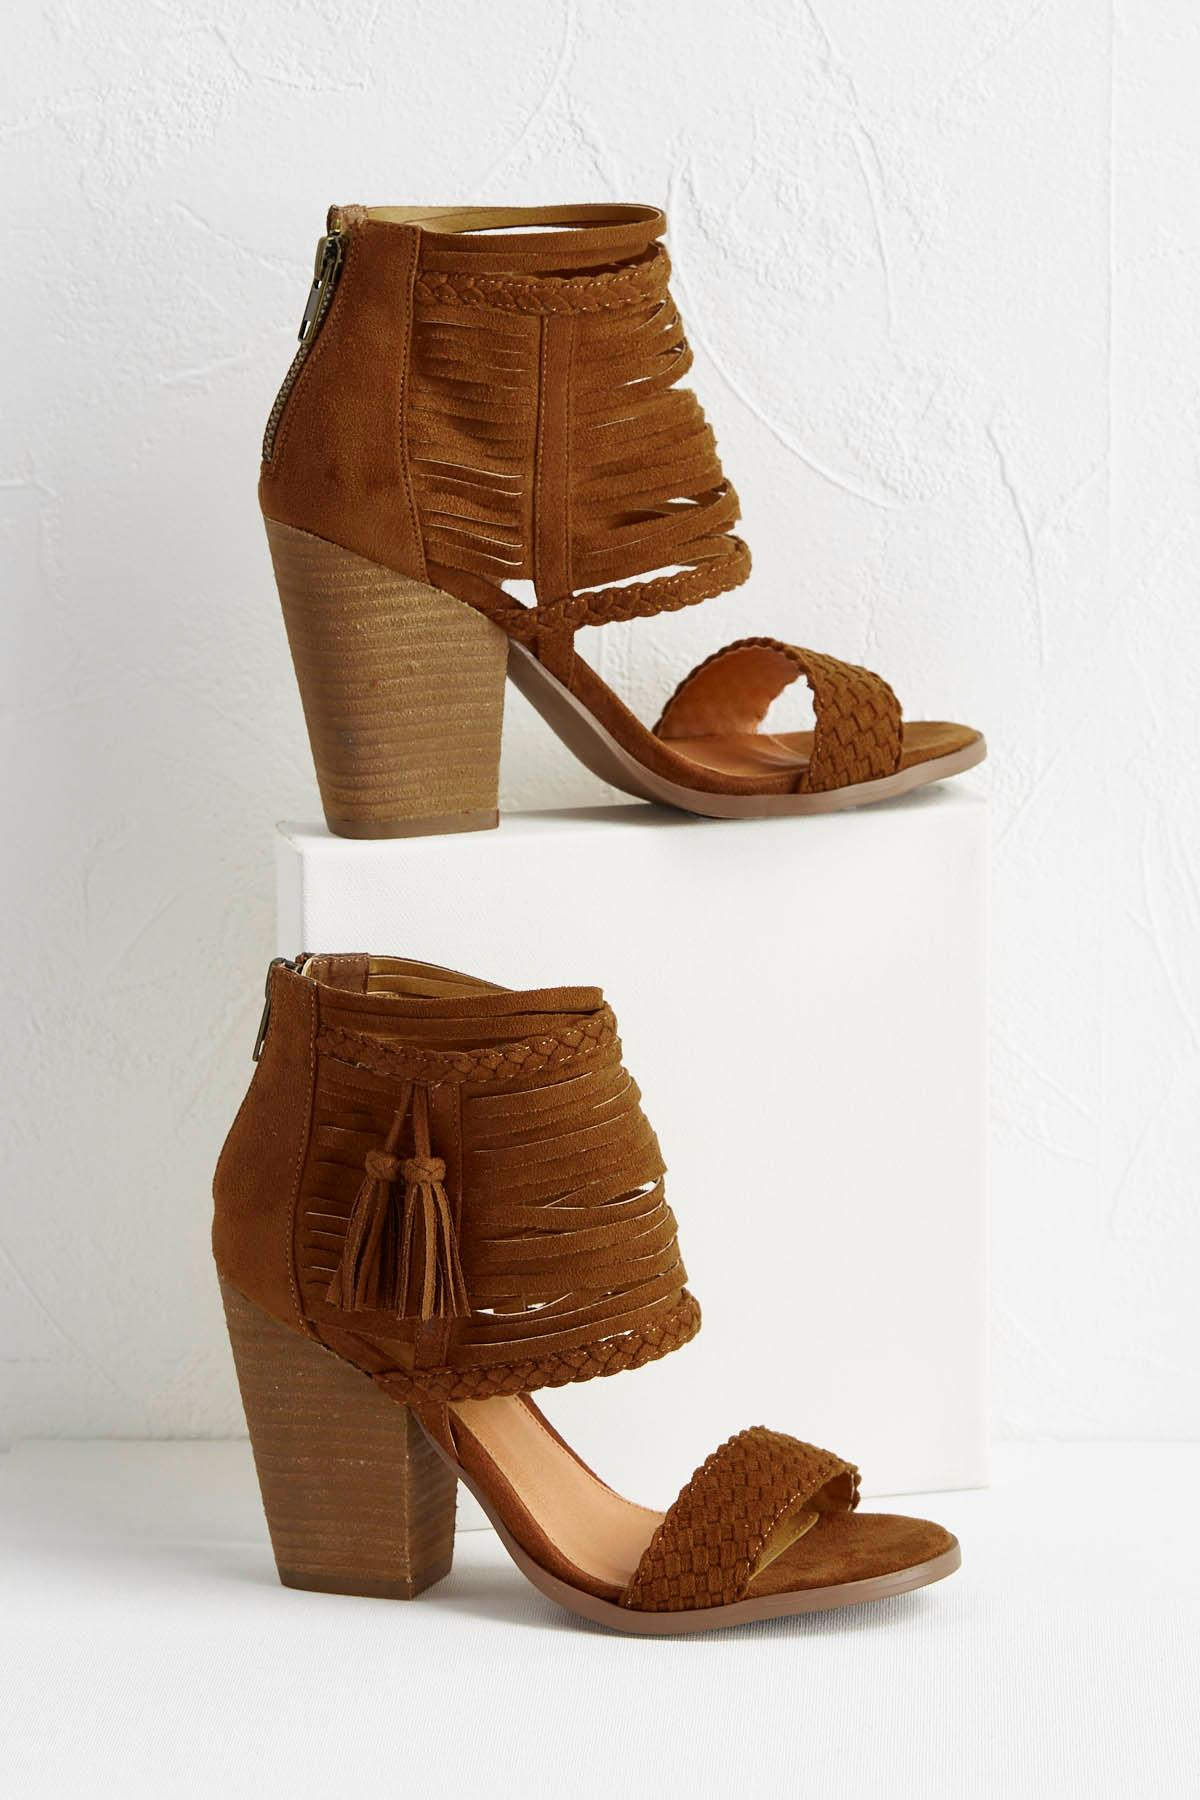 Banded Ankle Braid Tassel Shooties